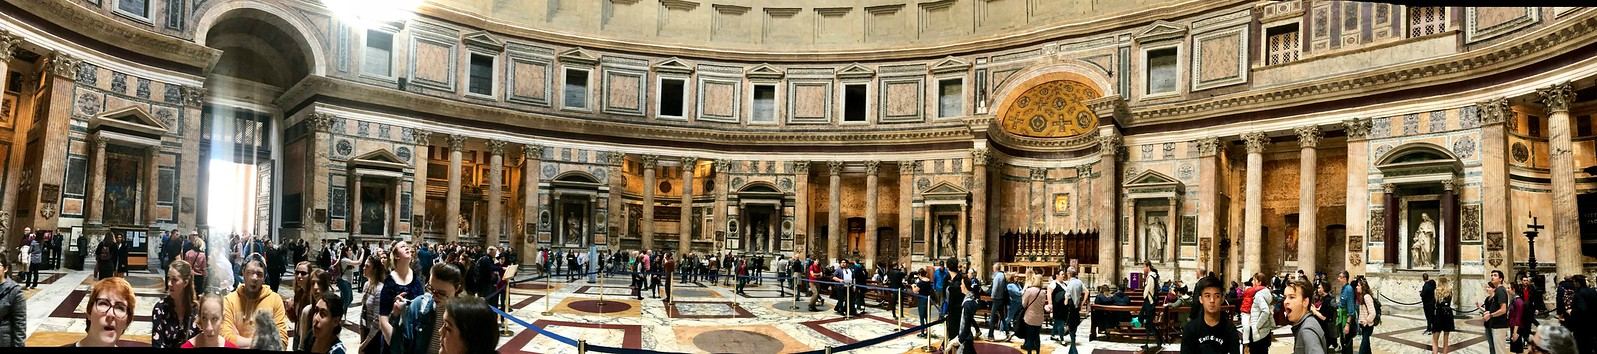 Panoramic image of the Pantheon